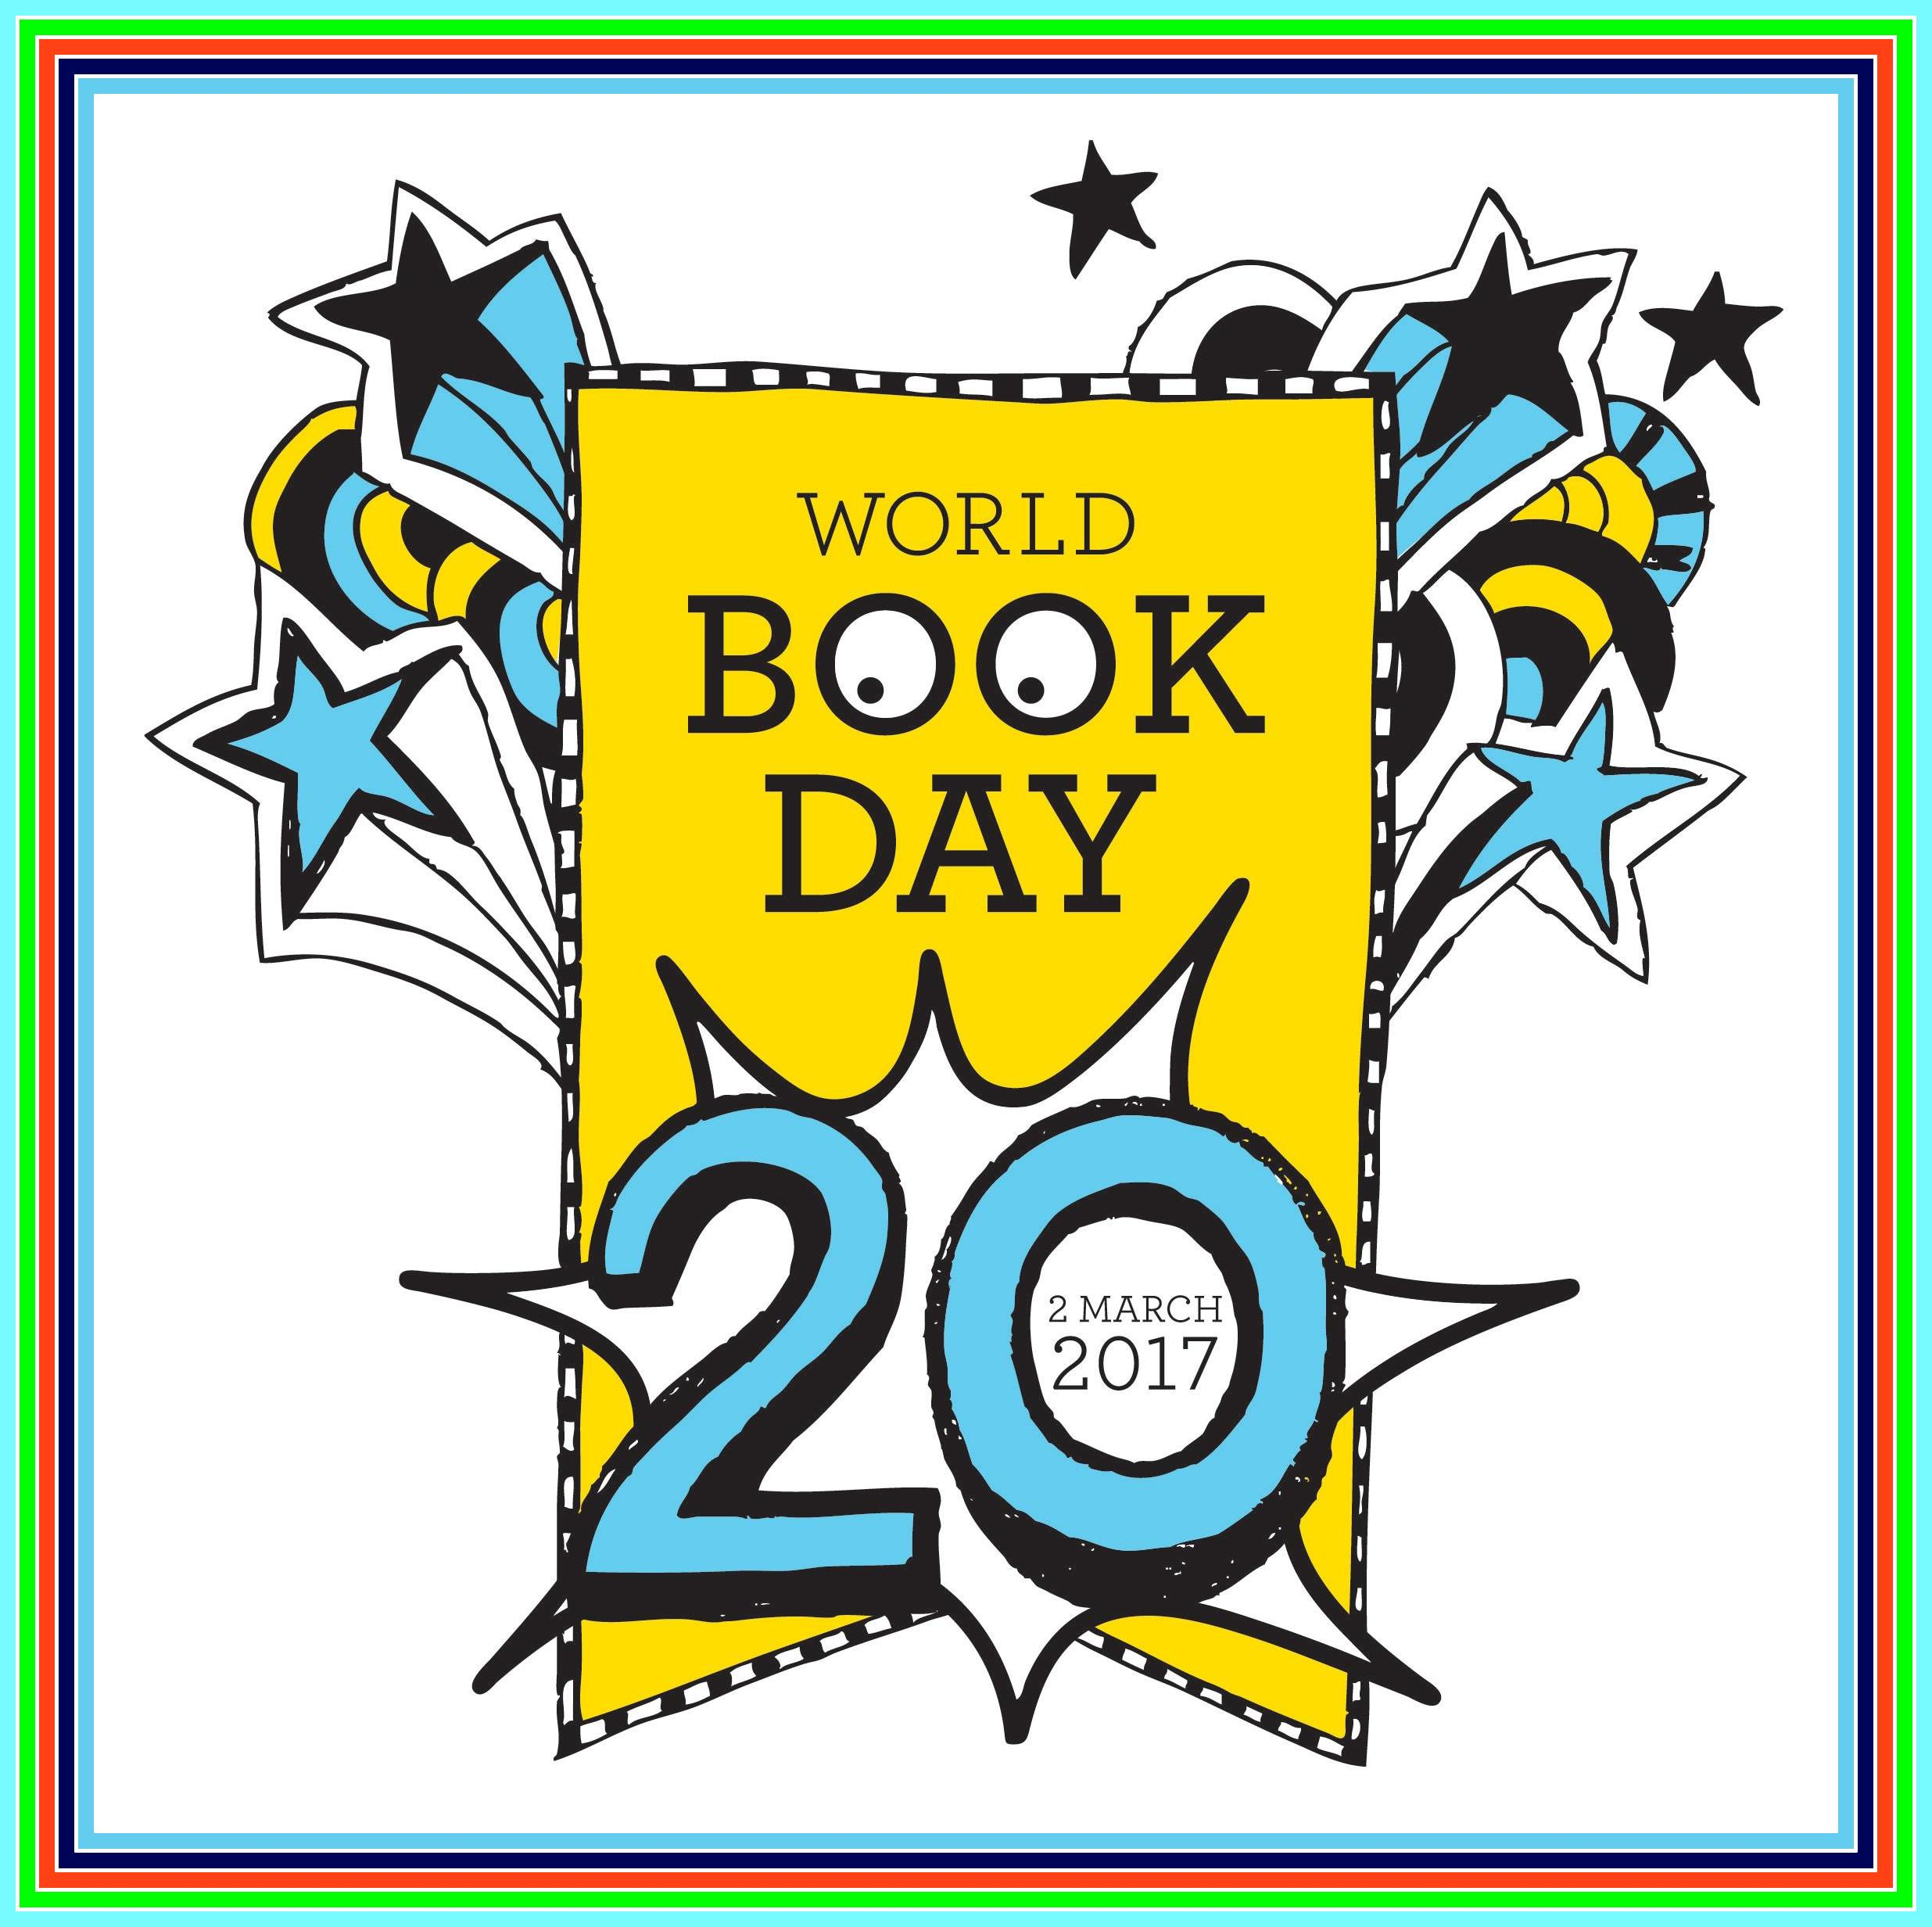 world book day 2017 logo